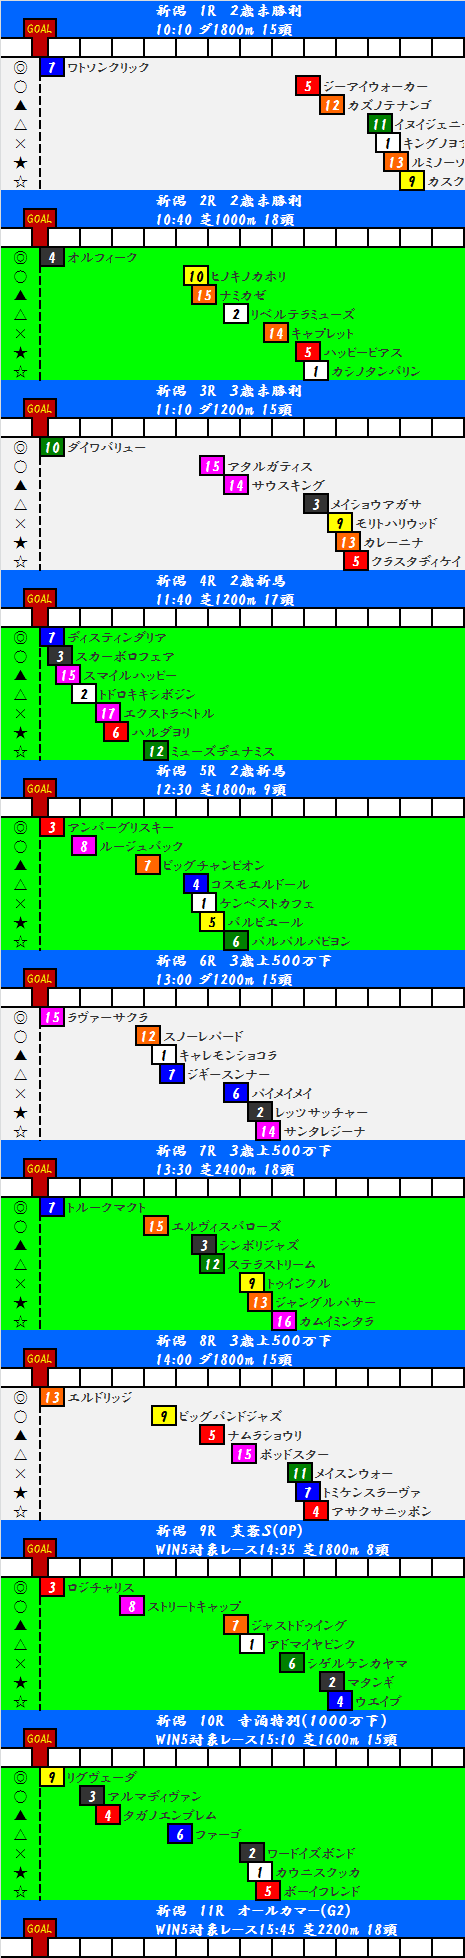 2014092801.png